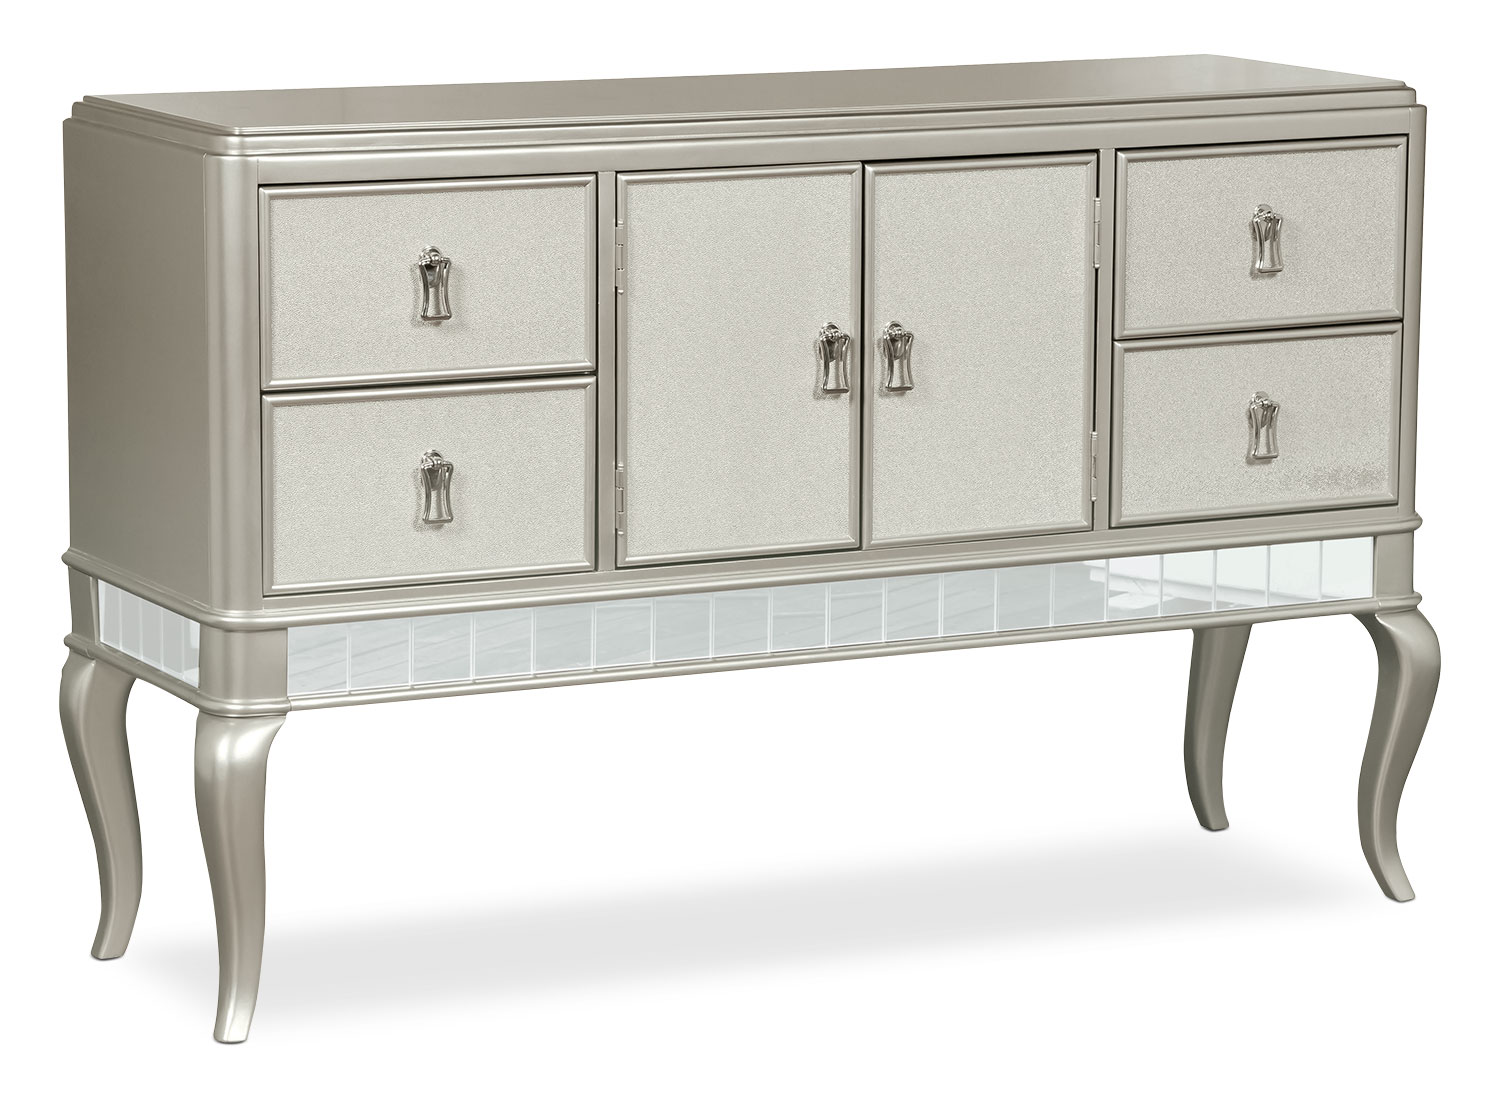 Dining Room Furniture - Diva Server - Frost